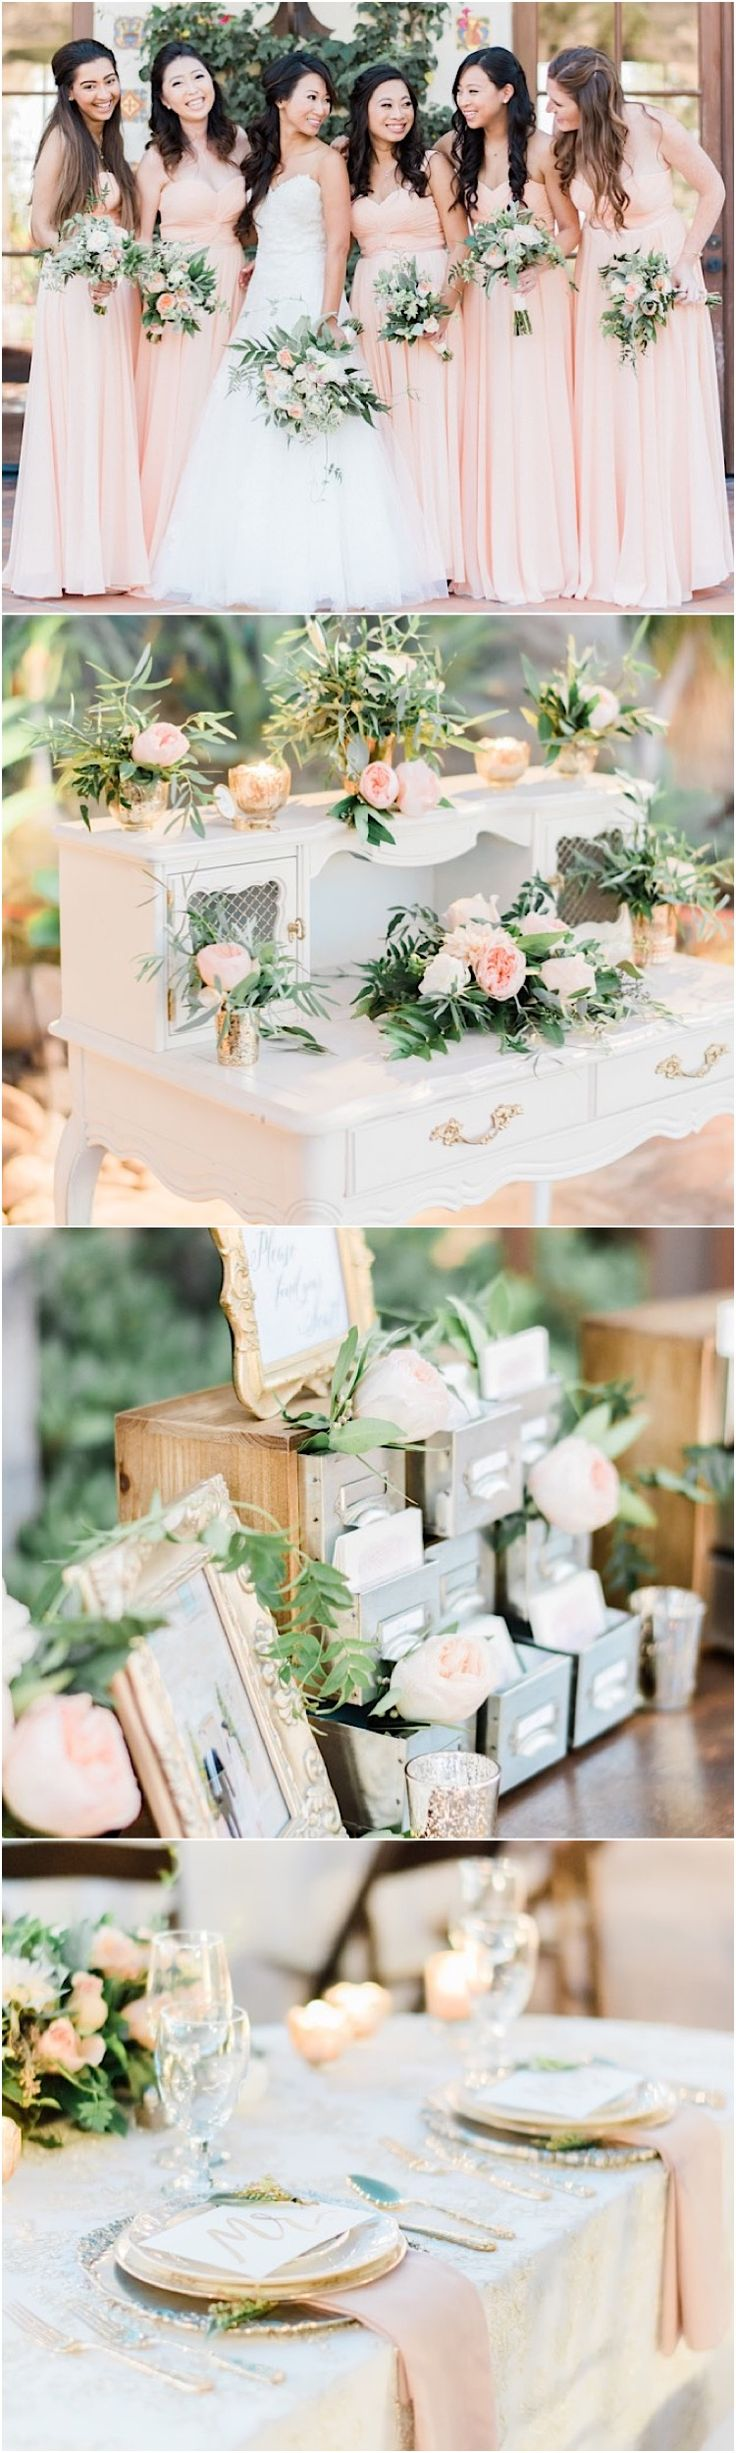 photo: Honey Honey Photography; Blush wedding reception ideas